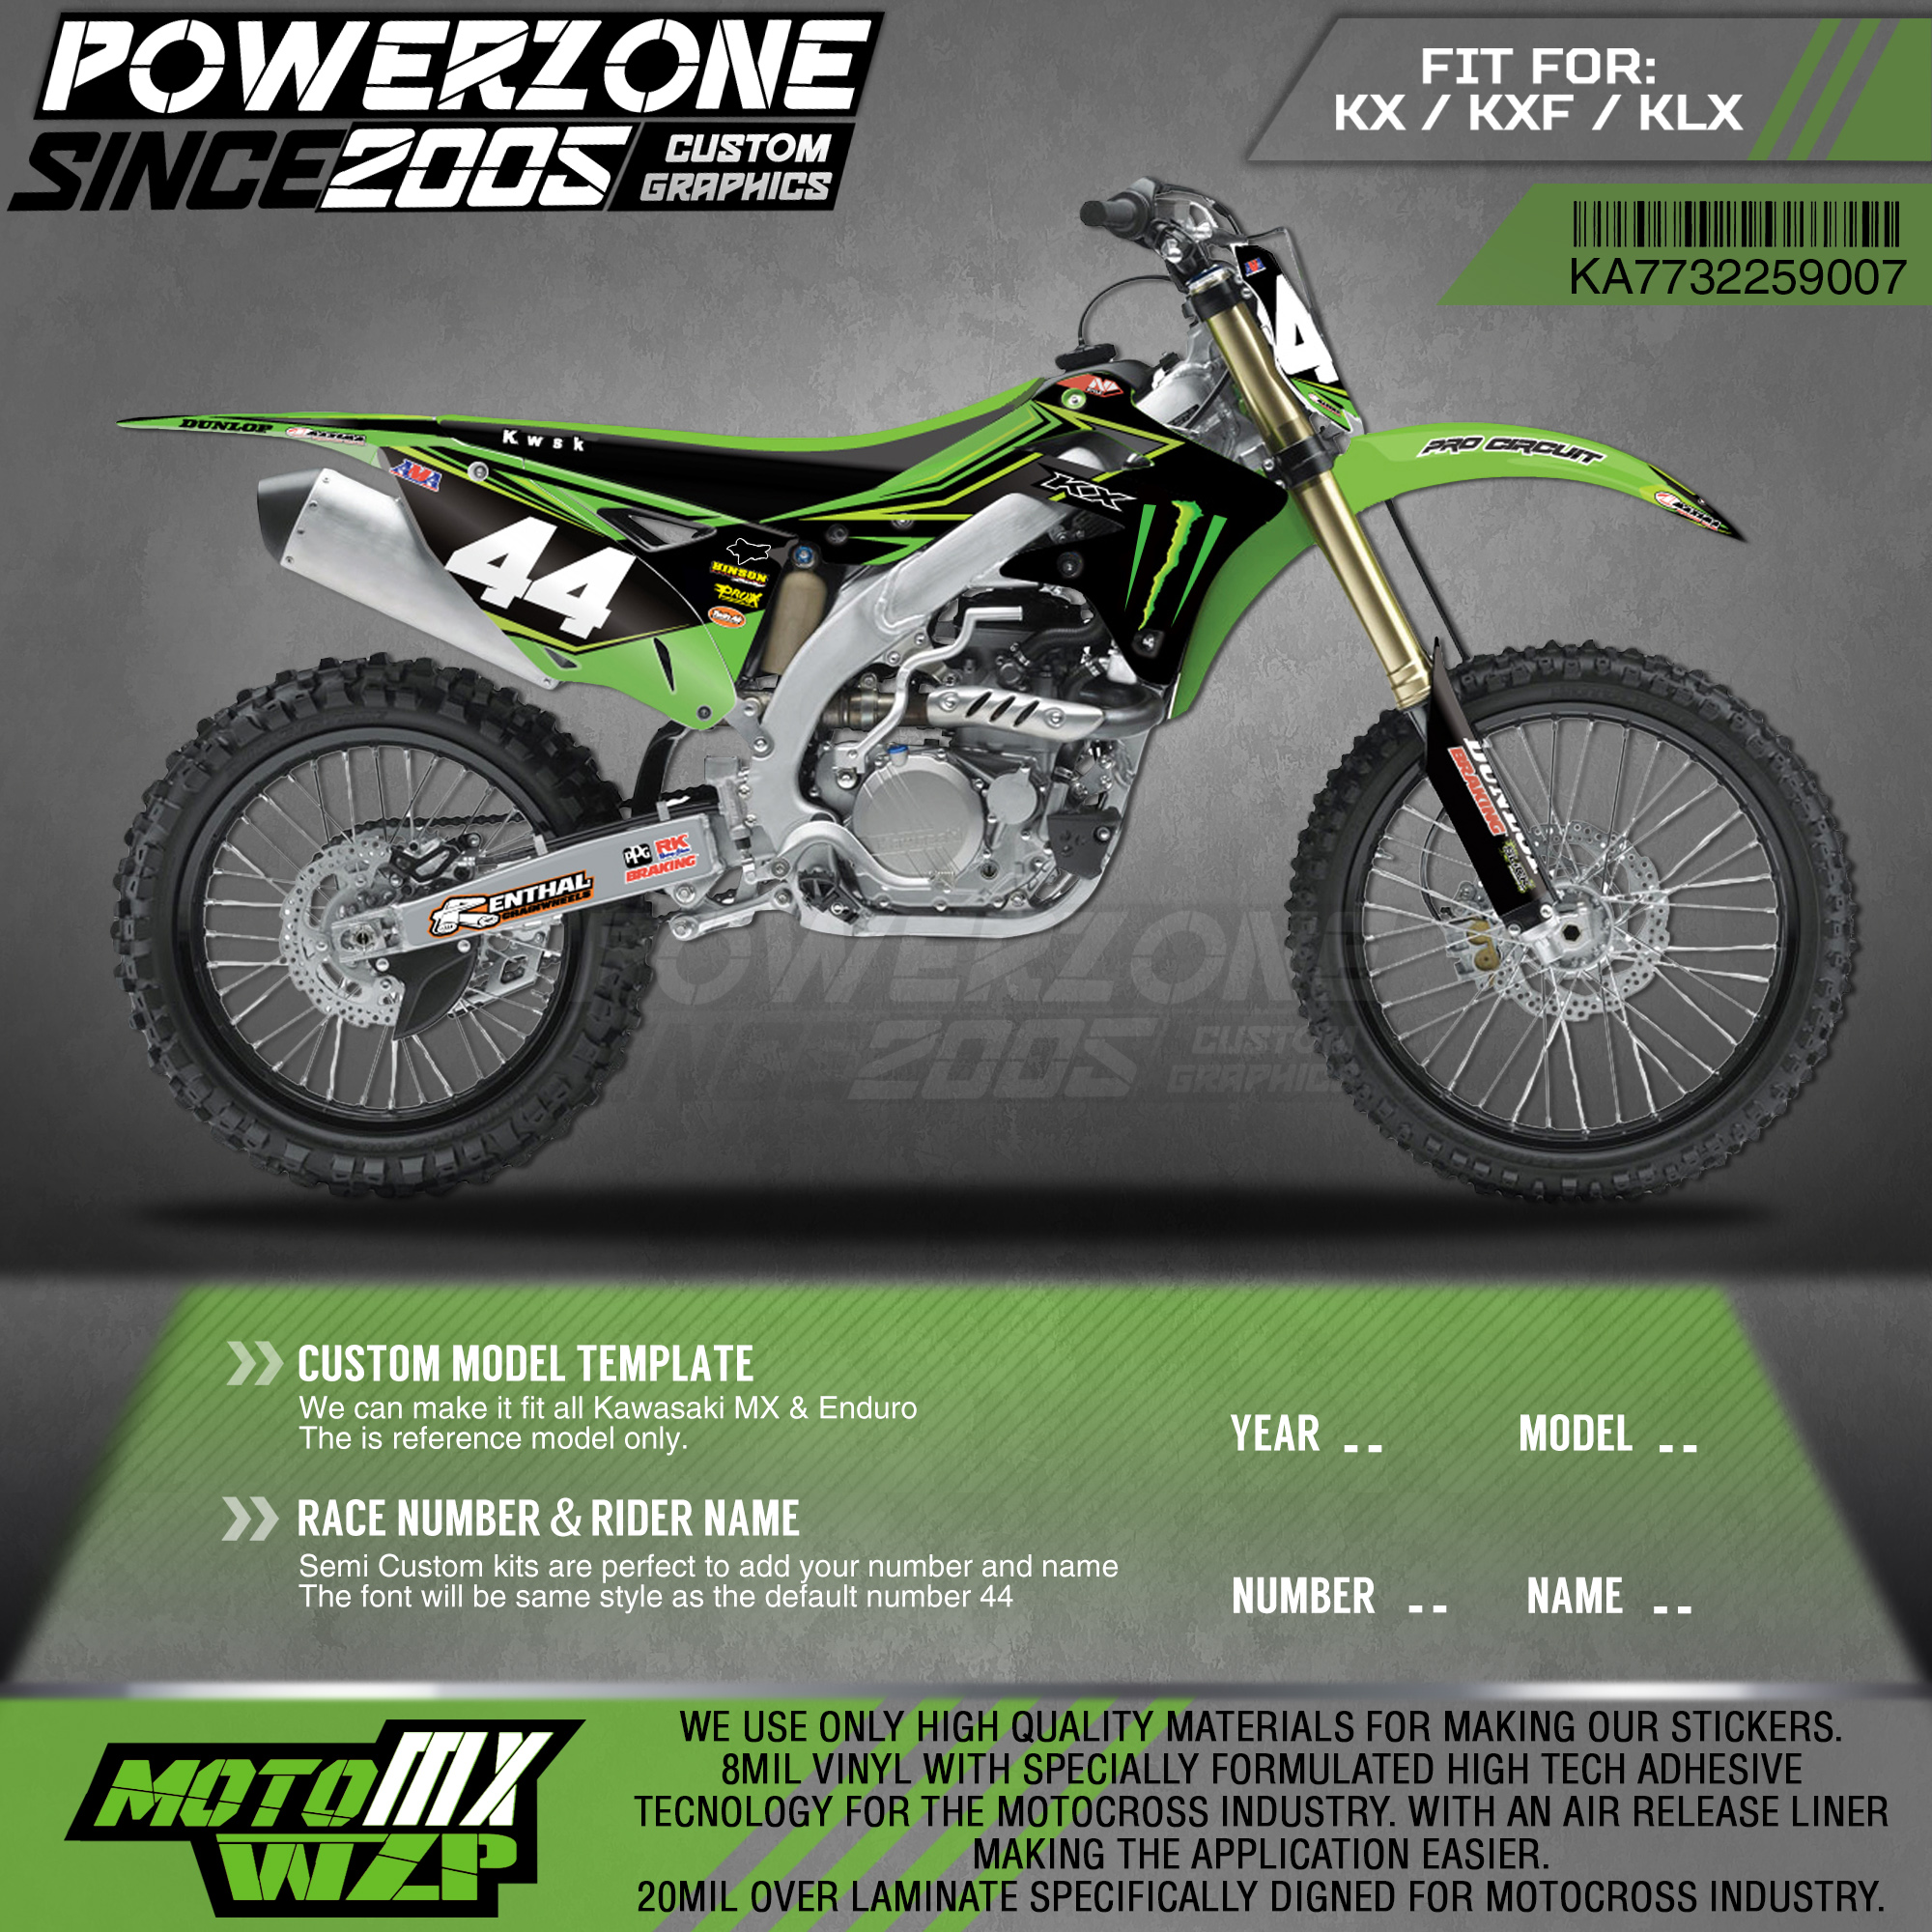 PowerZone Custom Team Graphics <font><b>Decals</b></font> 3M Stickers Kit For Kawasaki Sticker <font><b>Decal</b></font> 2013-2016 <font><b>KX250F</b></font> 07 image